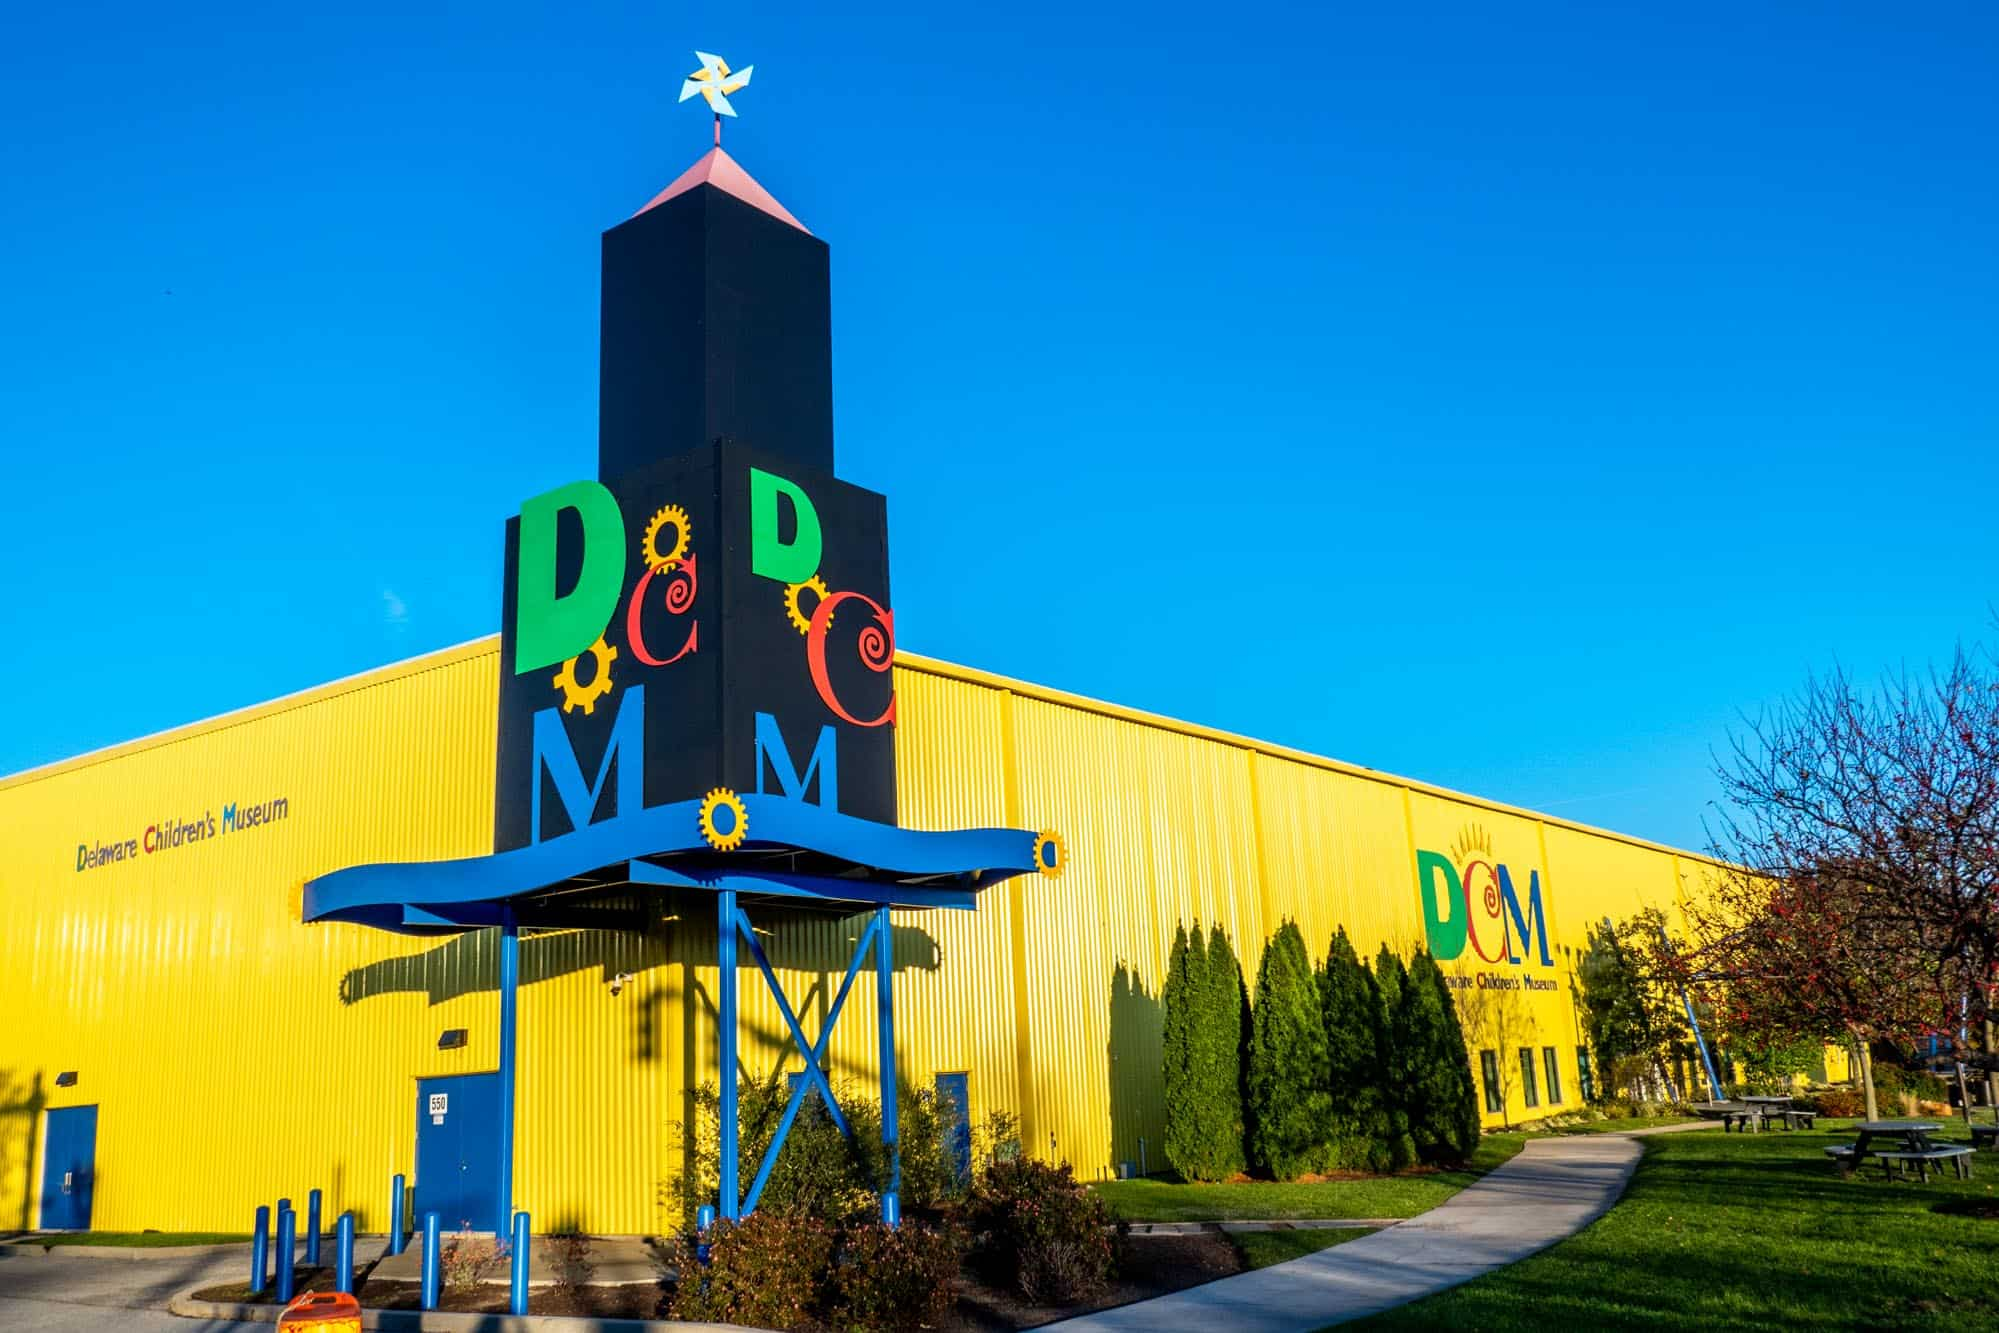 Yellow building with black, blue, red, and green details and sign for Delaware Children's Museum